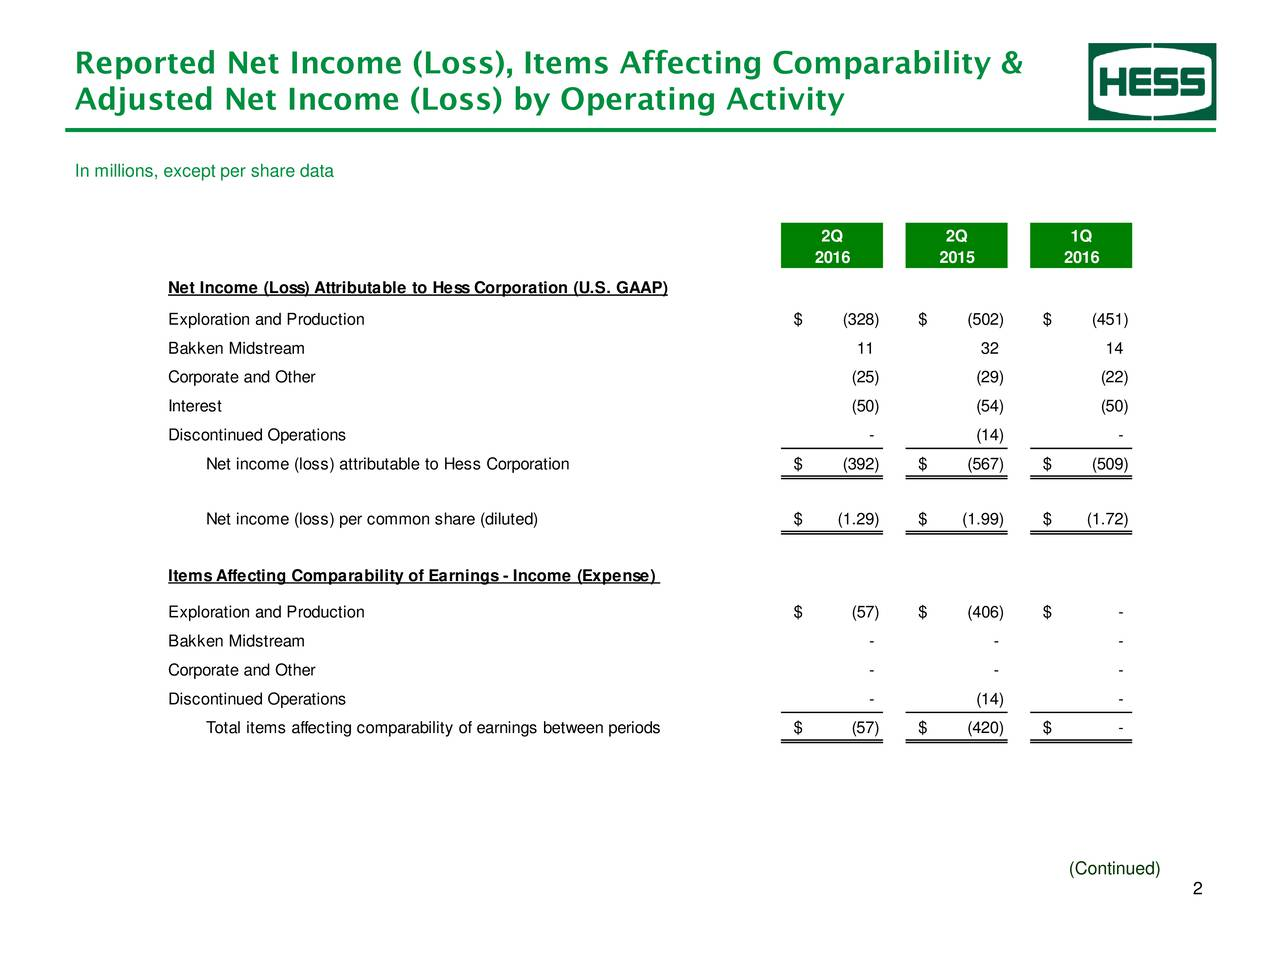 Adjusted Net Income (Loss) by Operating Activity In millions, except per share data 2Q 2Q 1Q 2016 2015 2016 Net Income (Loss) Attributable to HessCorporation (U.S. GAAP) Exploration and Production $ (328) $ (502) $ (451) Bakken Midstream 11 32 14 Corporate and Other (25) (29) (22) Interest (50) (54) (50) Discontinued Operations - (14) - Net income (loss) attributable to Hess Corporation $ (392) $ (567) $ (509) Net income (loss) per common share (diluted) $ (1.29) $ (1.99) $ (1.72) ItemsAffecting Comparability of Earnings- Income (Expense) Exploration and Production $ (57) $ (406) $ - Bakken Midstream - - - Corporate and Other - - - Discontinued Operations - (14) - Total items affecting comparability of earnings between periods $ (57) $ (420) $ - (Continued) 2